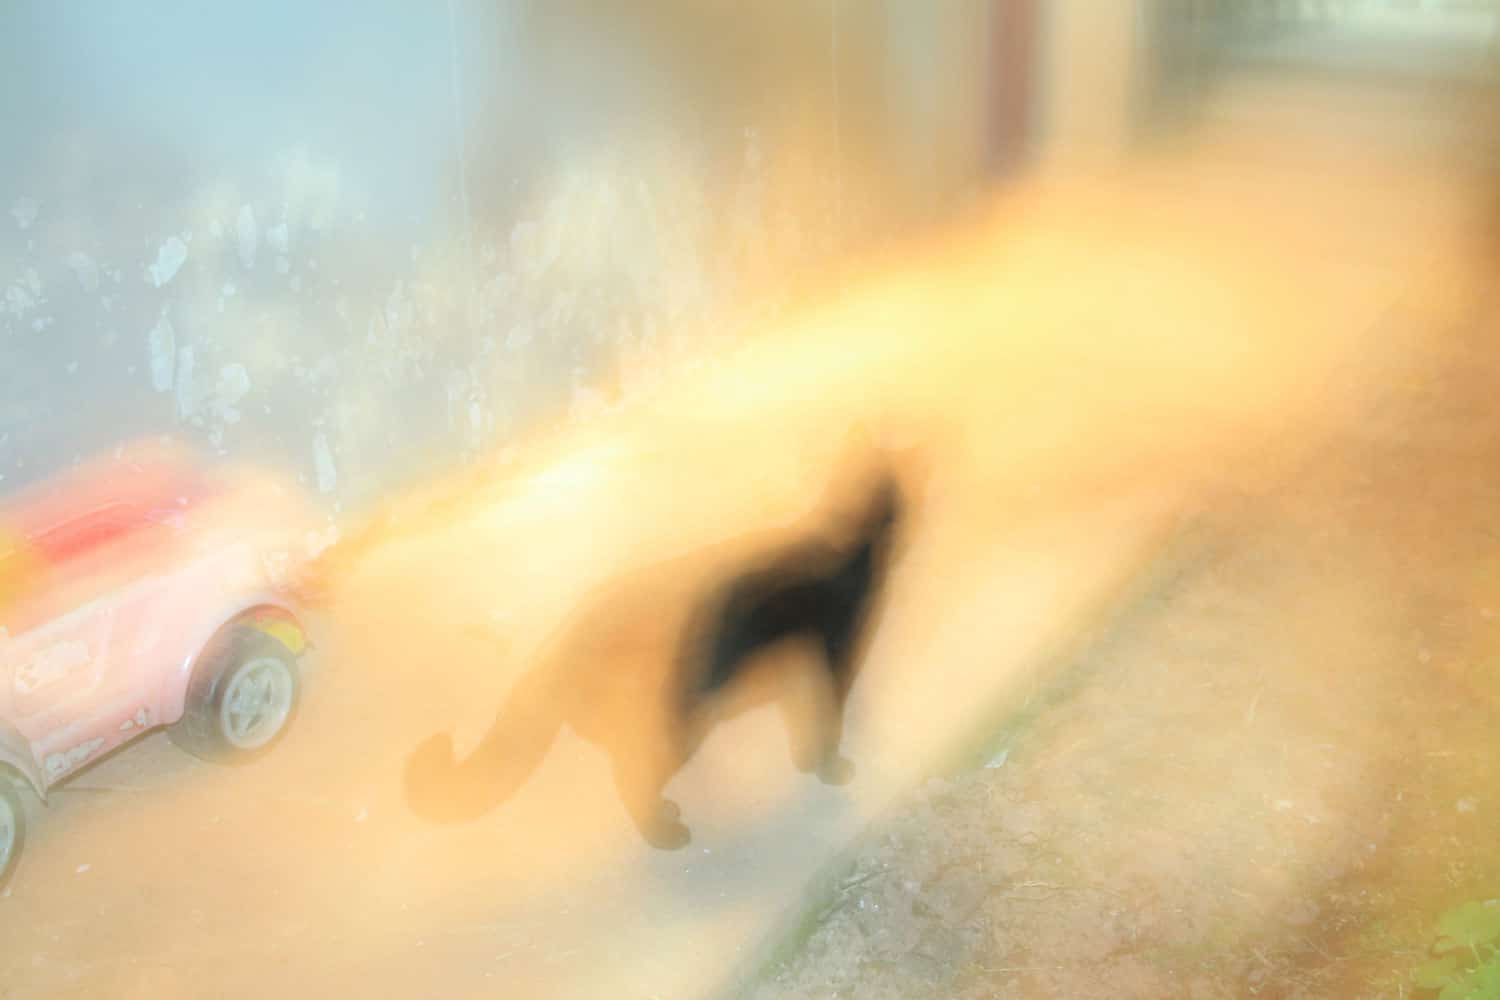 blurred cat